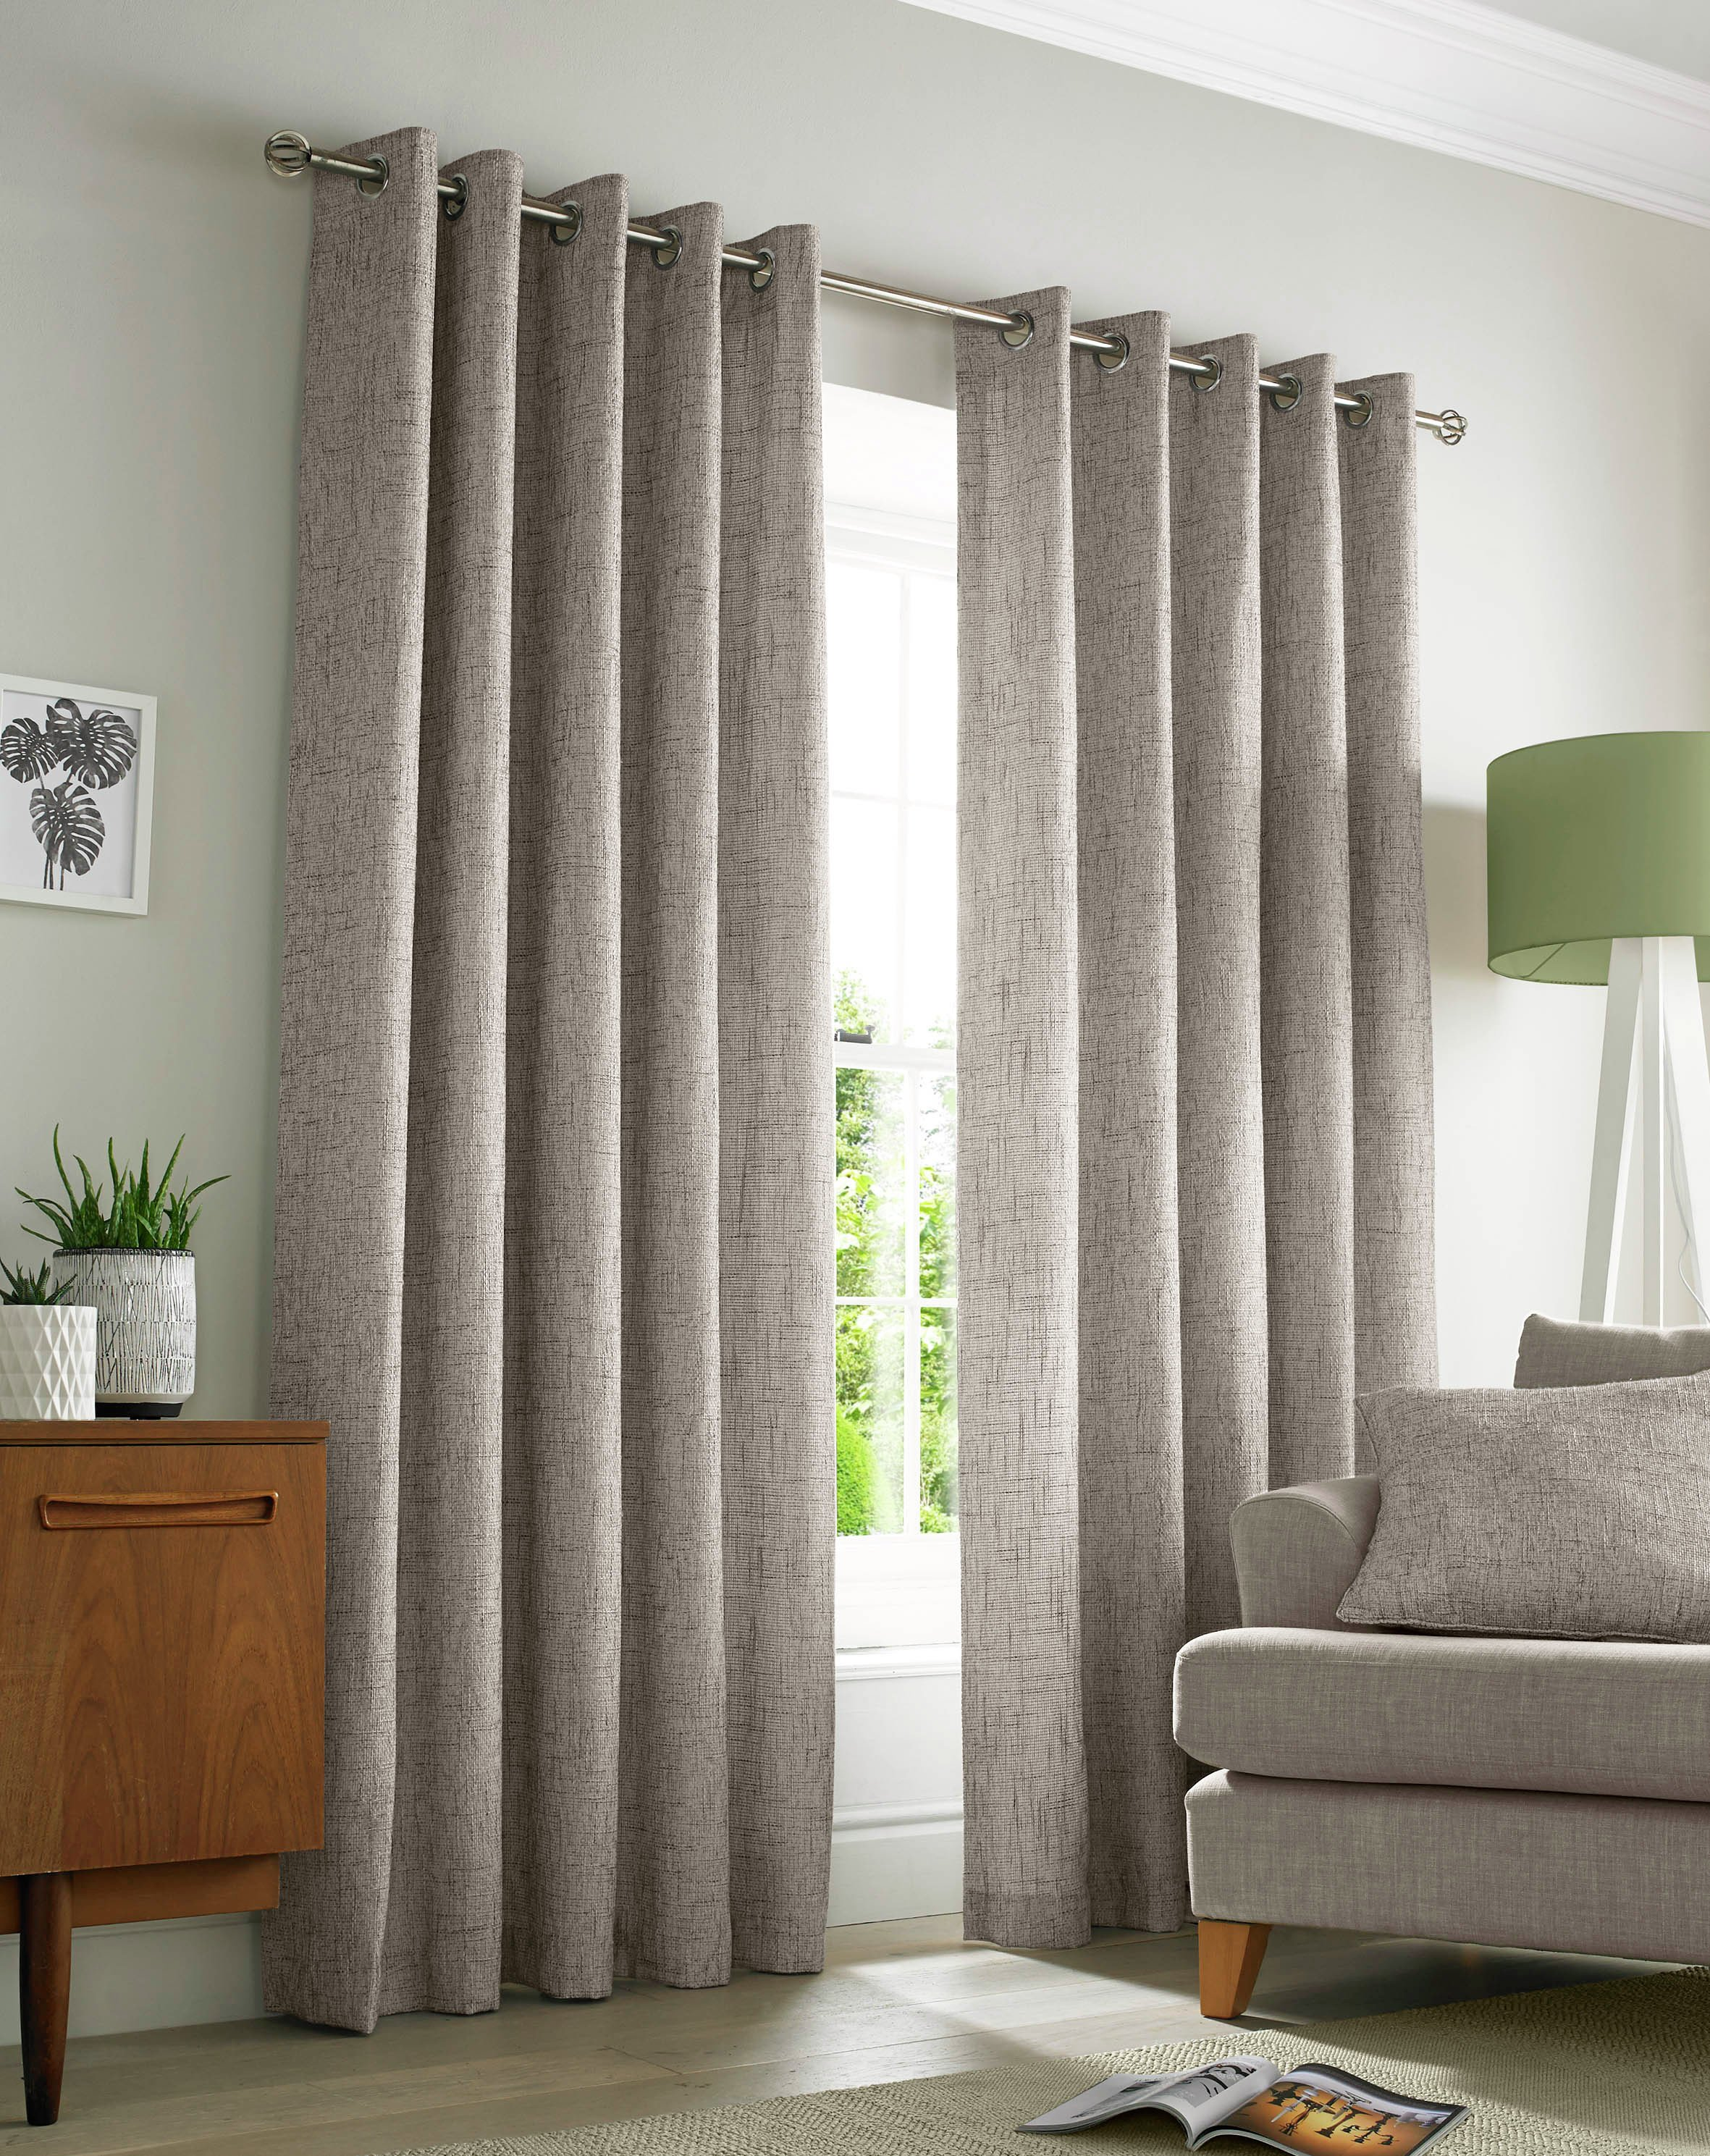 Image of Academy Eyelet Curtains - 117x137cm - Natural.